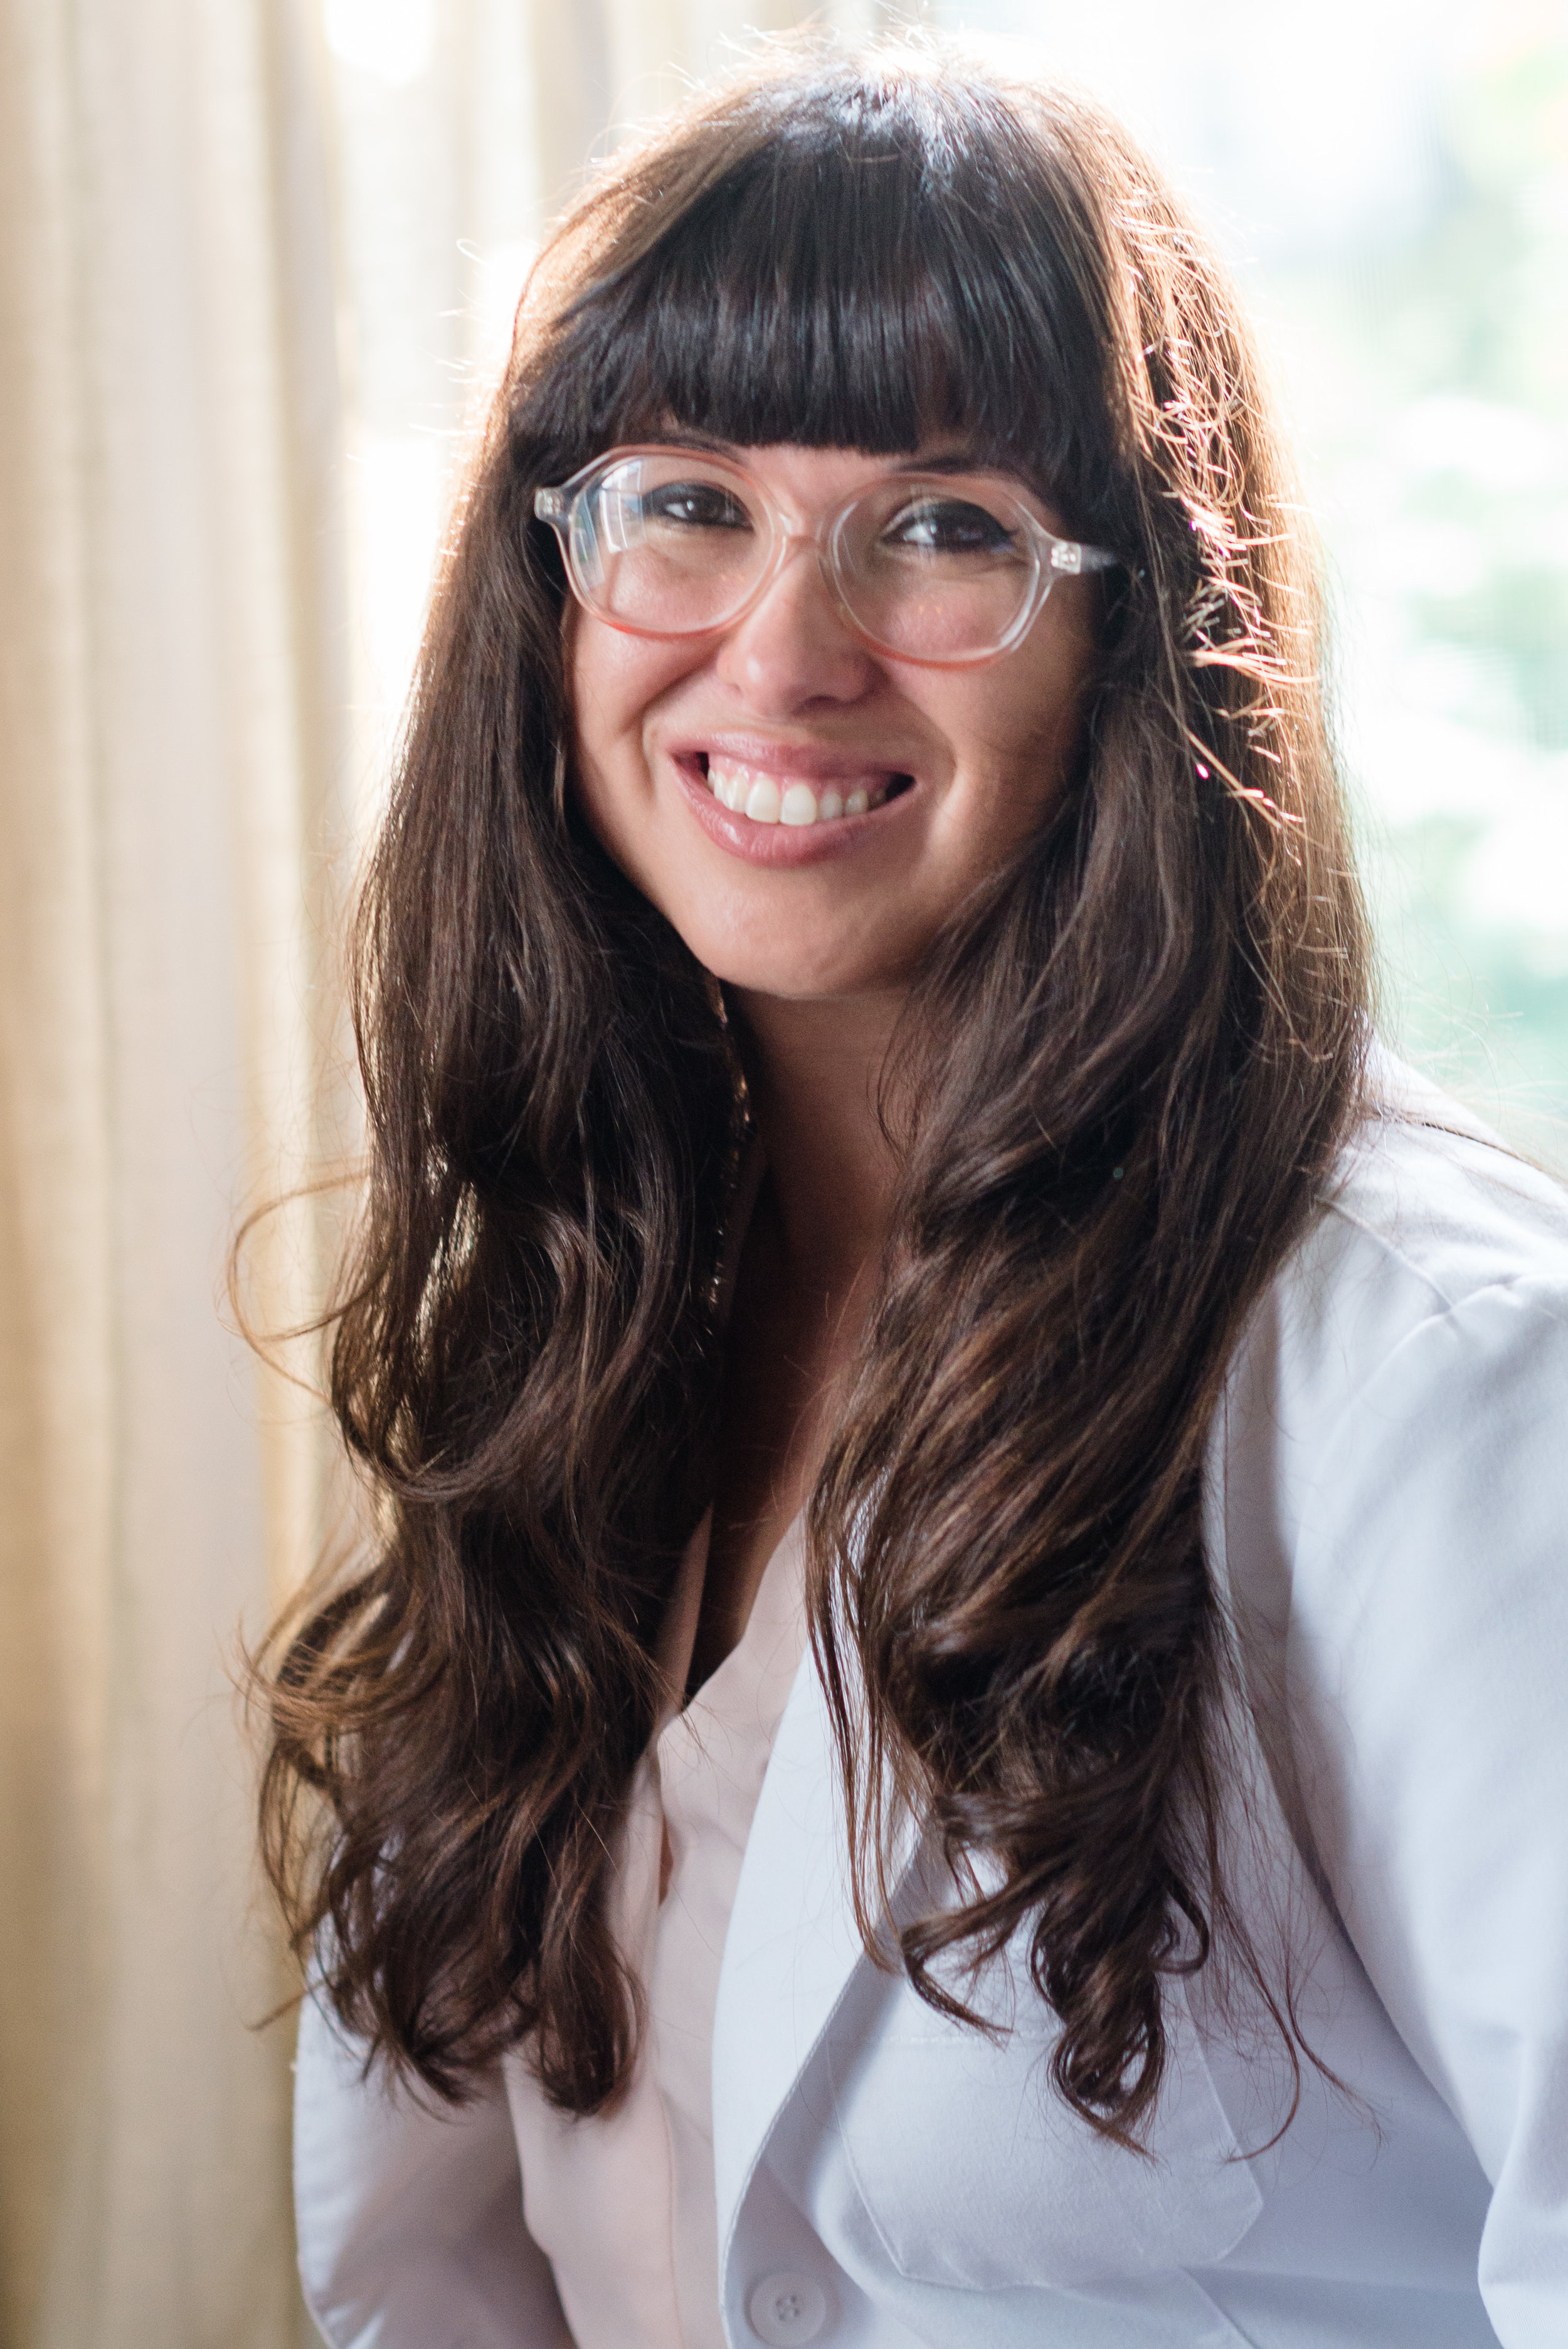 Andrea Bell of TetherAndFly.com | Nontraditional Pre-Med